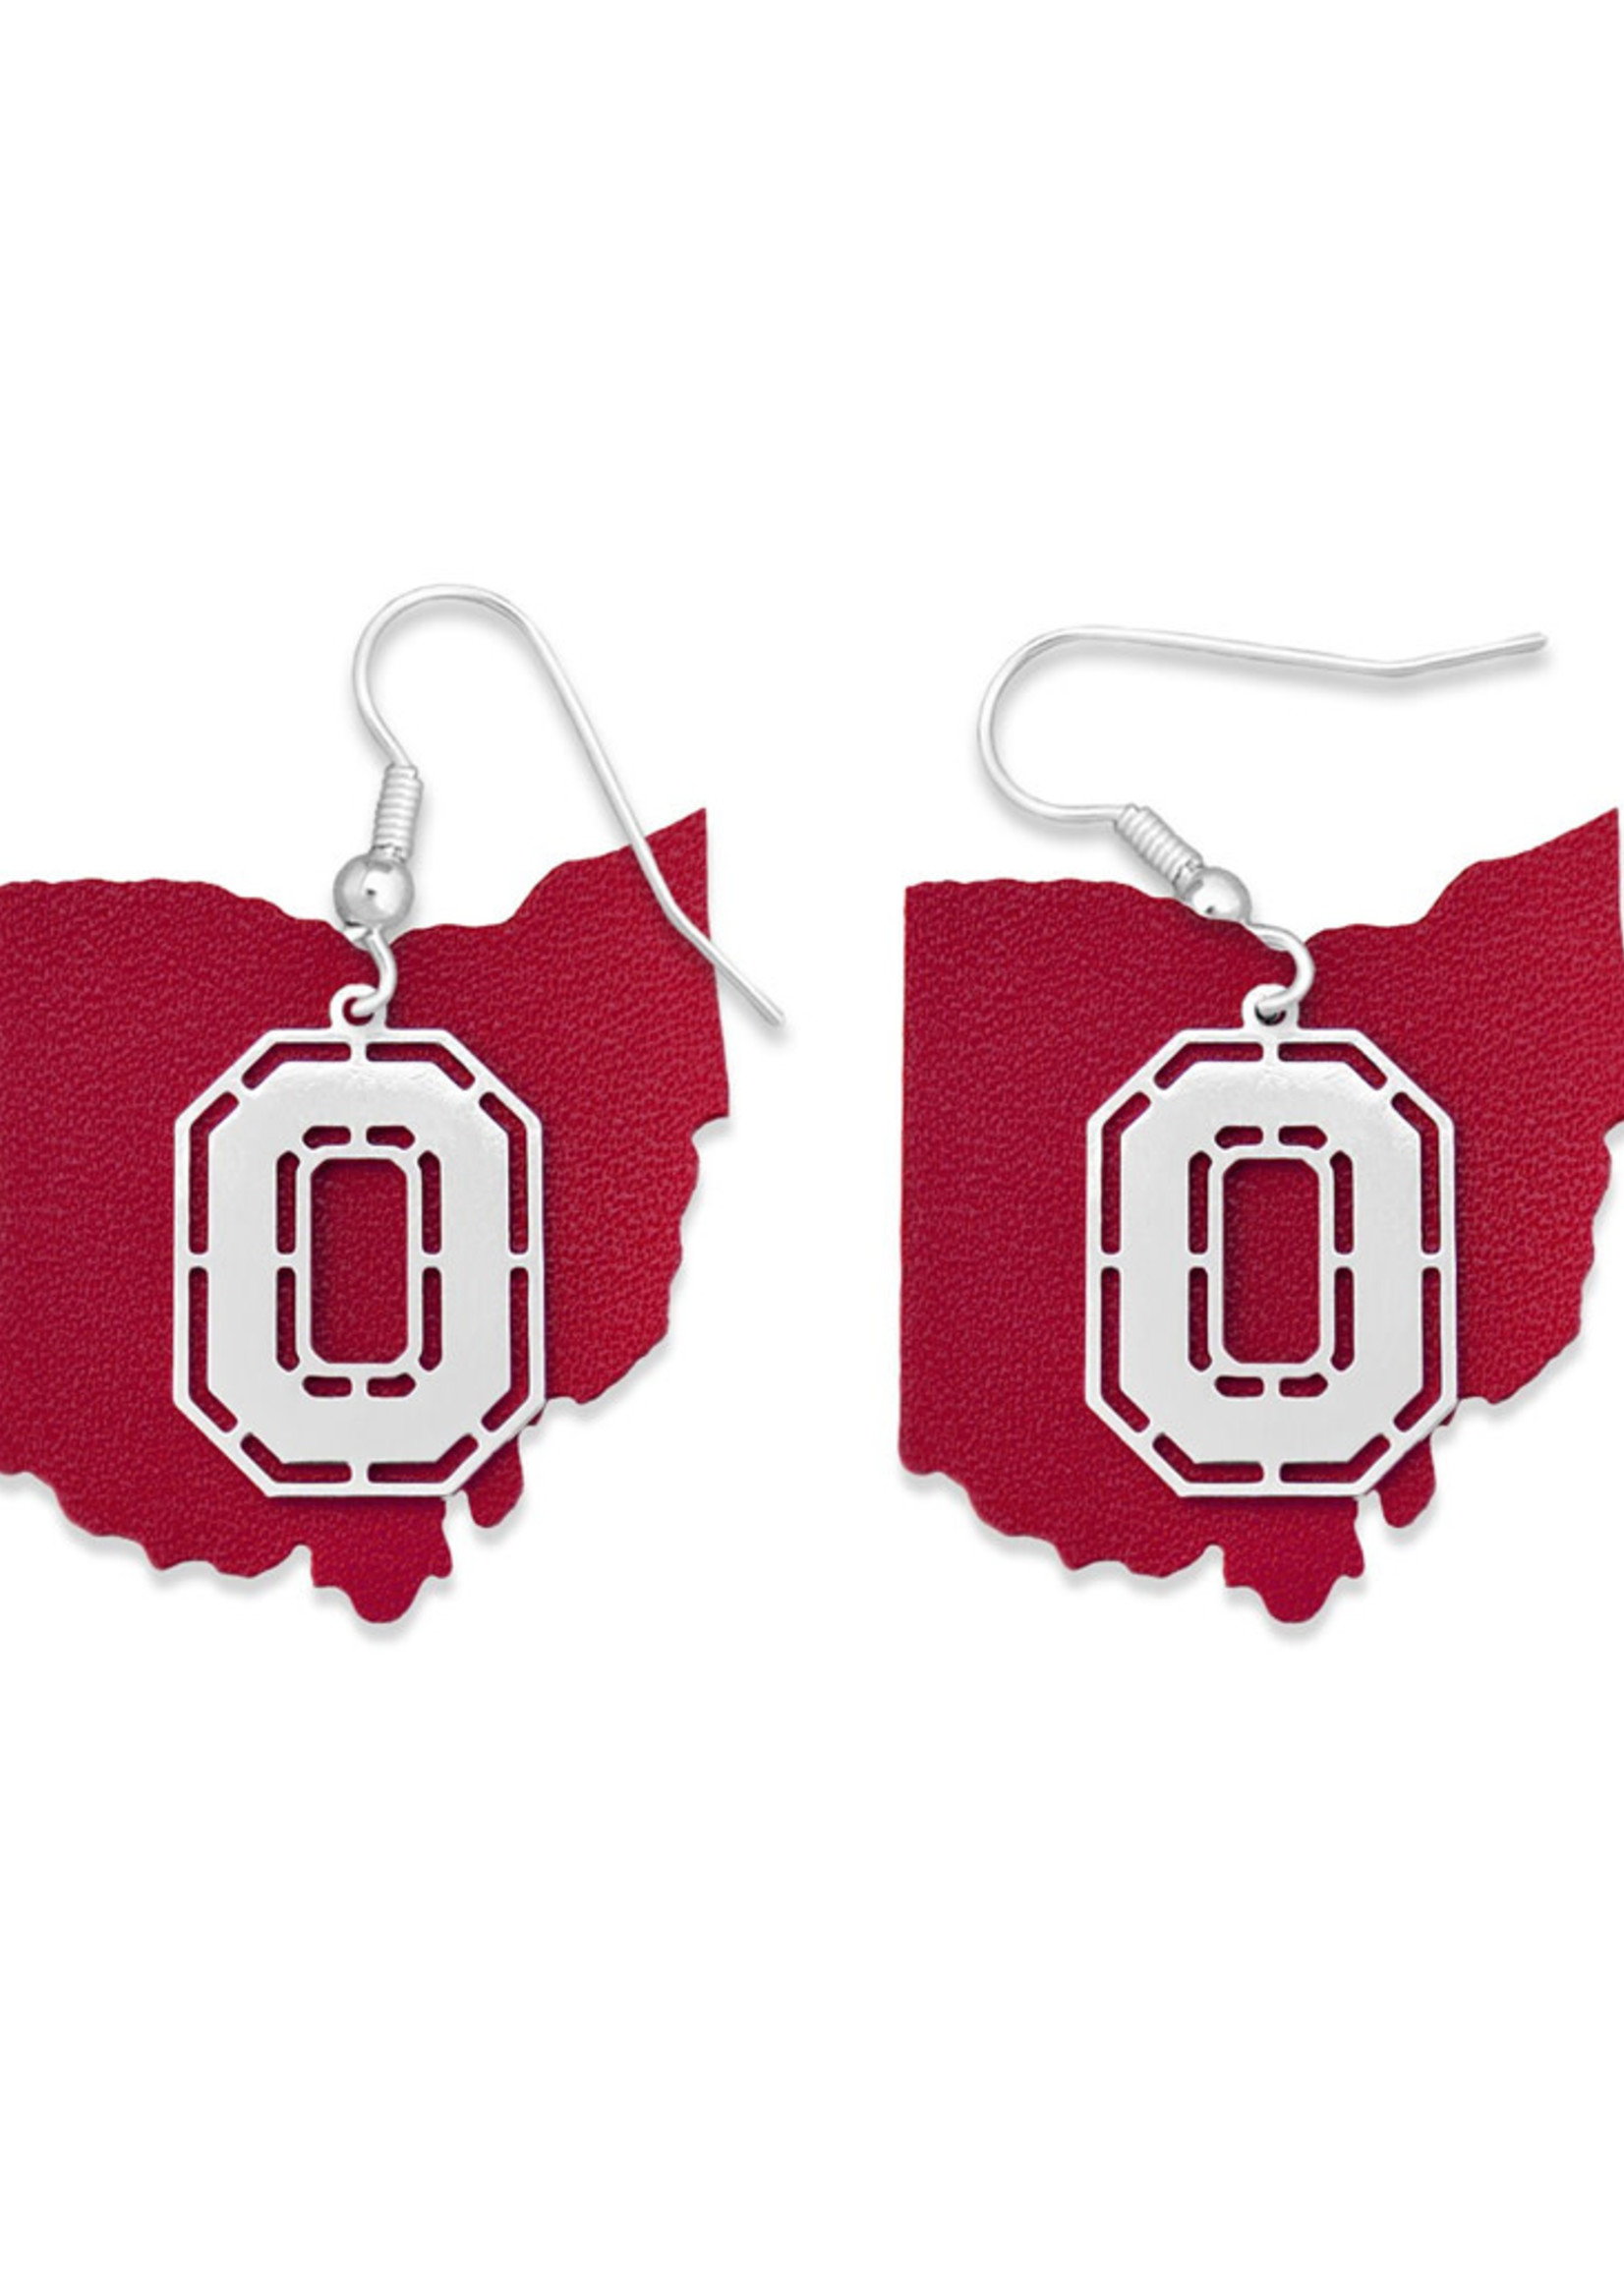 Ohio State Buckeyes Earrings- Home Team